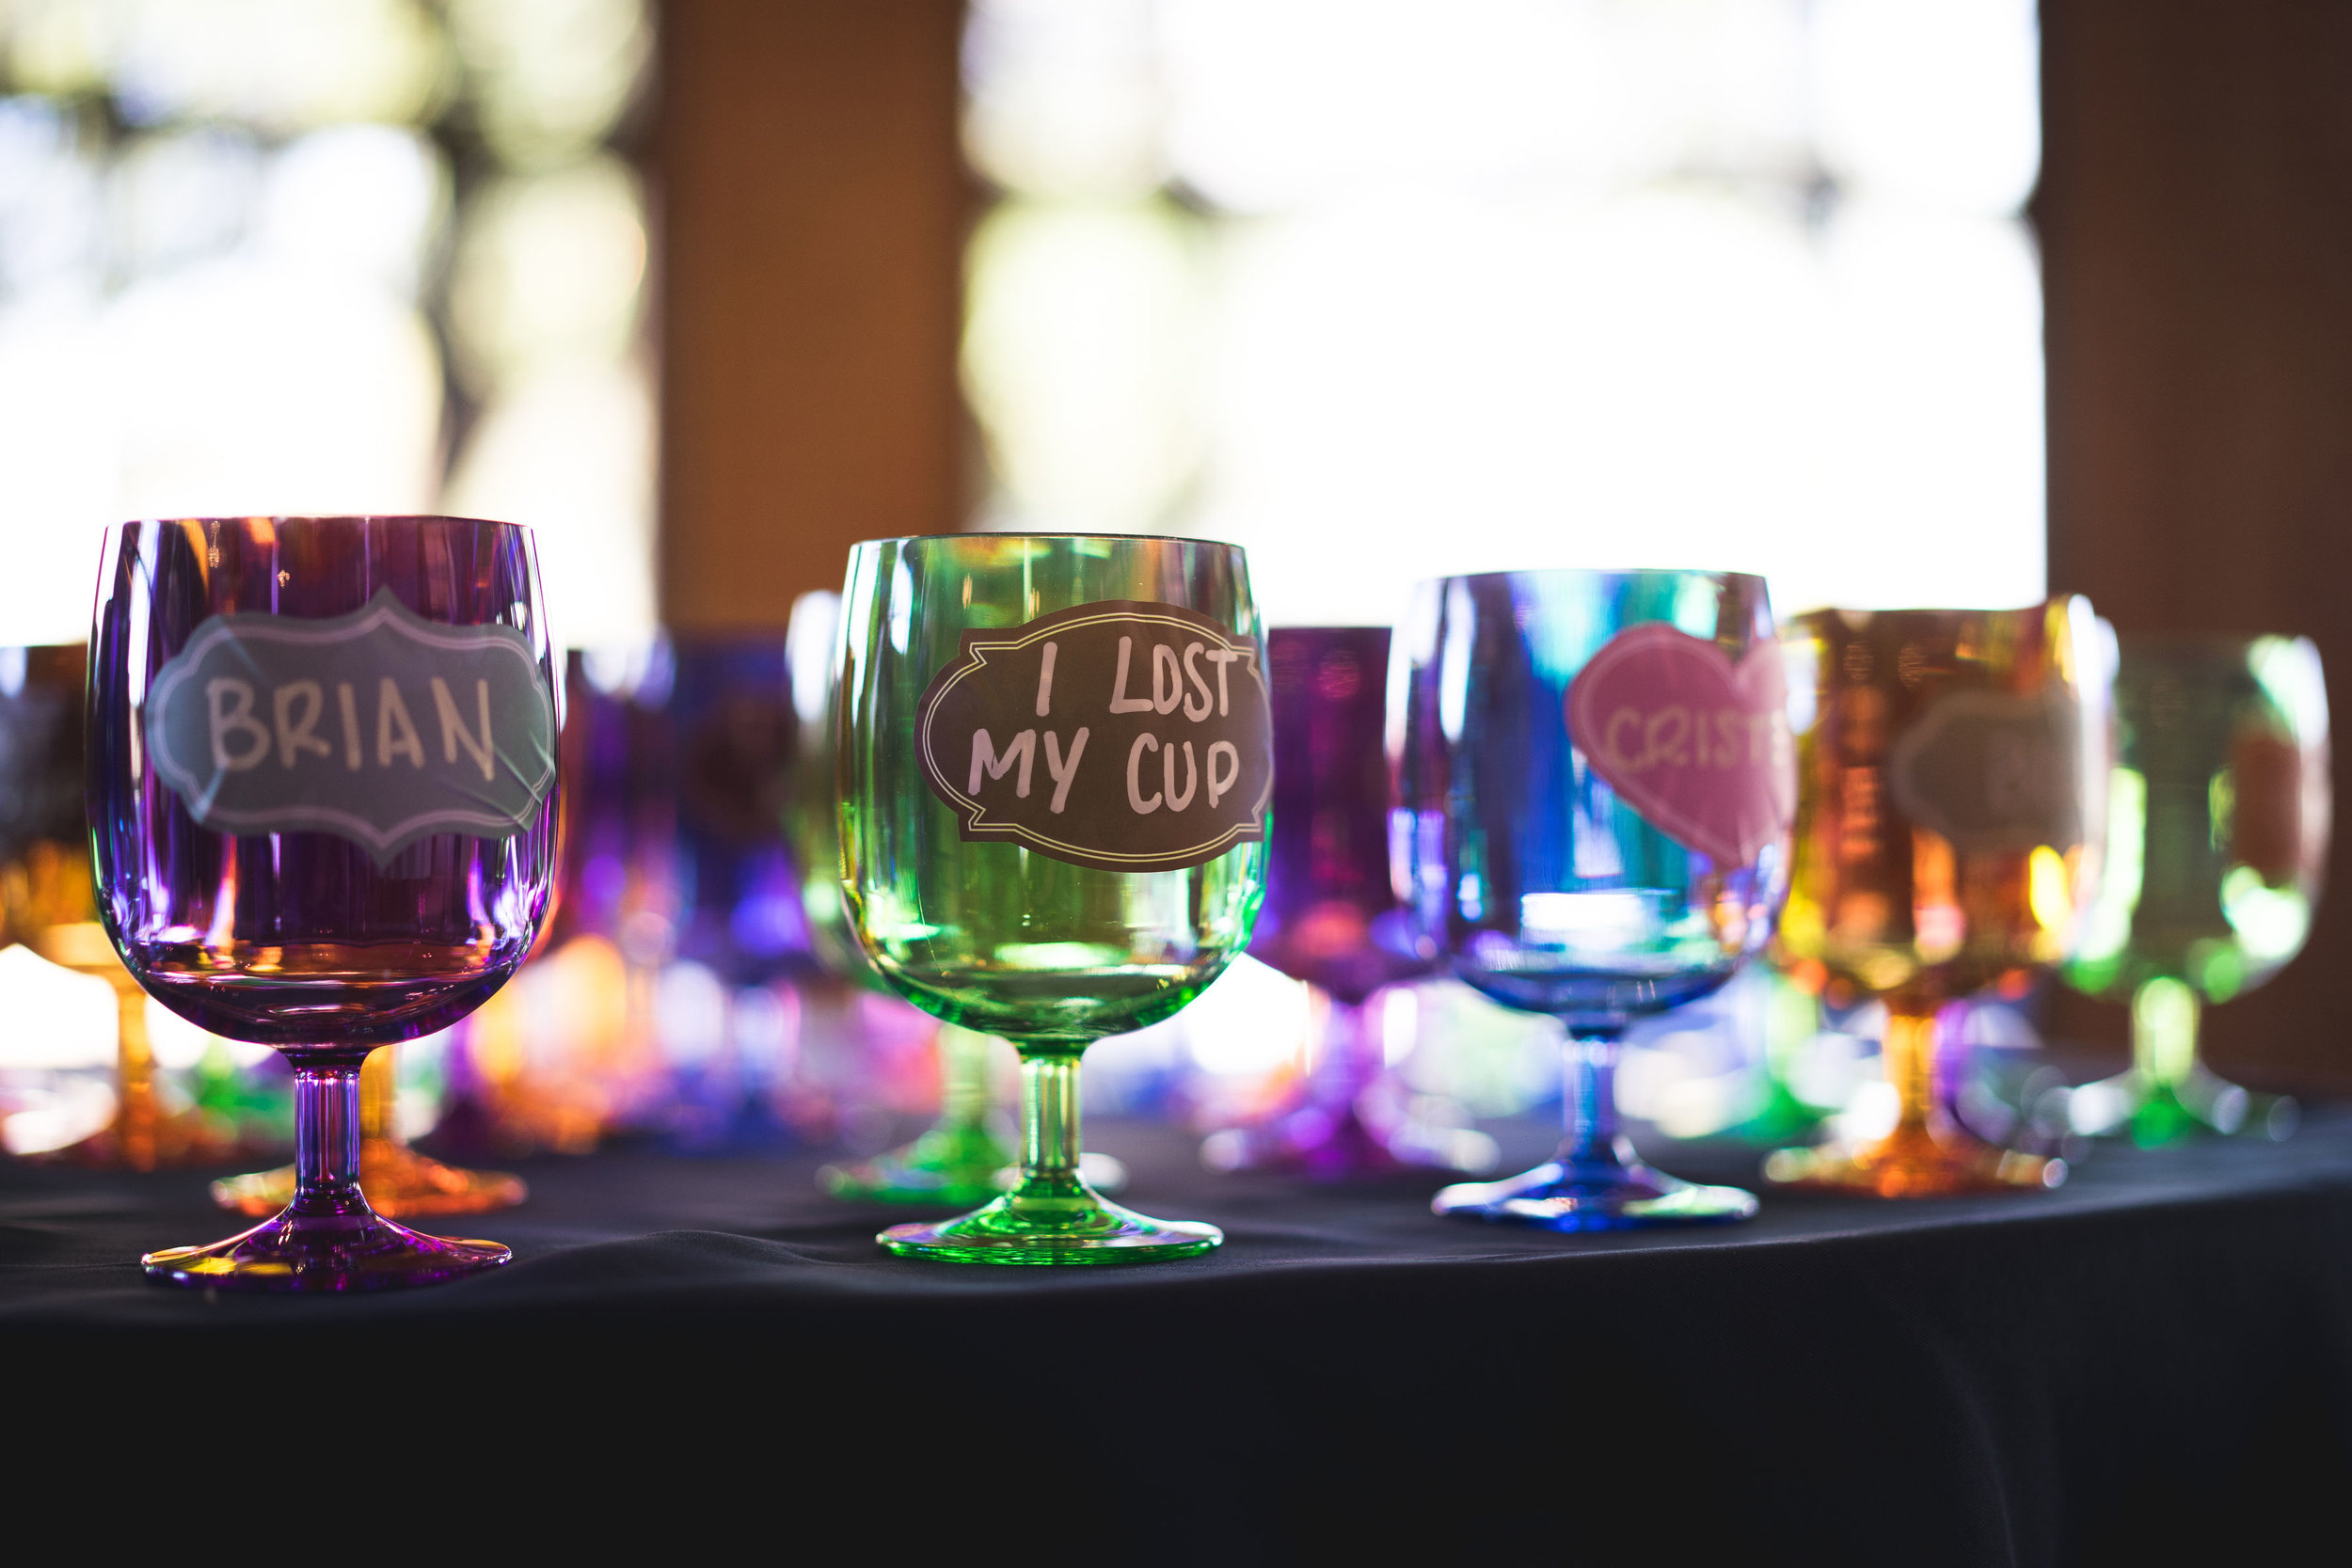 find your cup for the night wedding cup favors wedding ideas budget